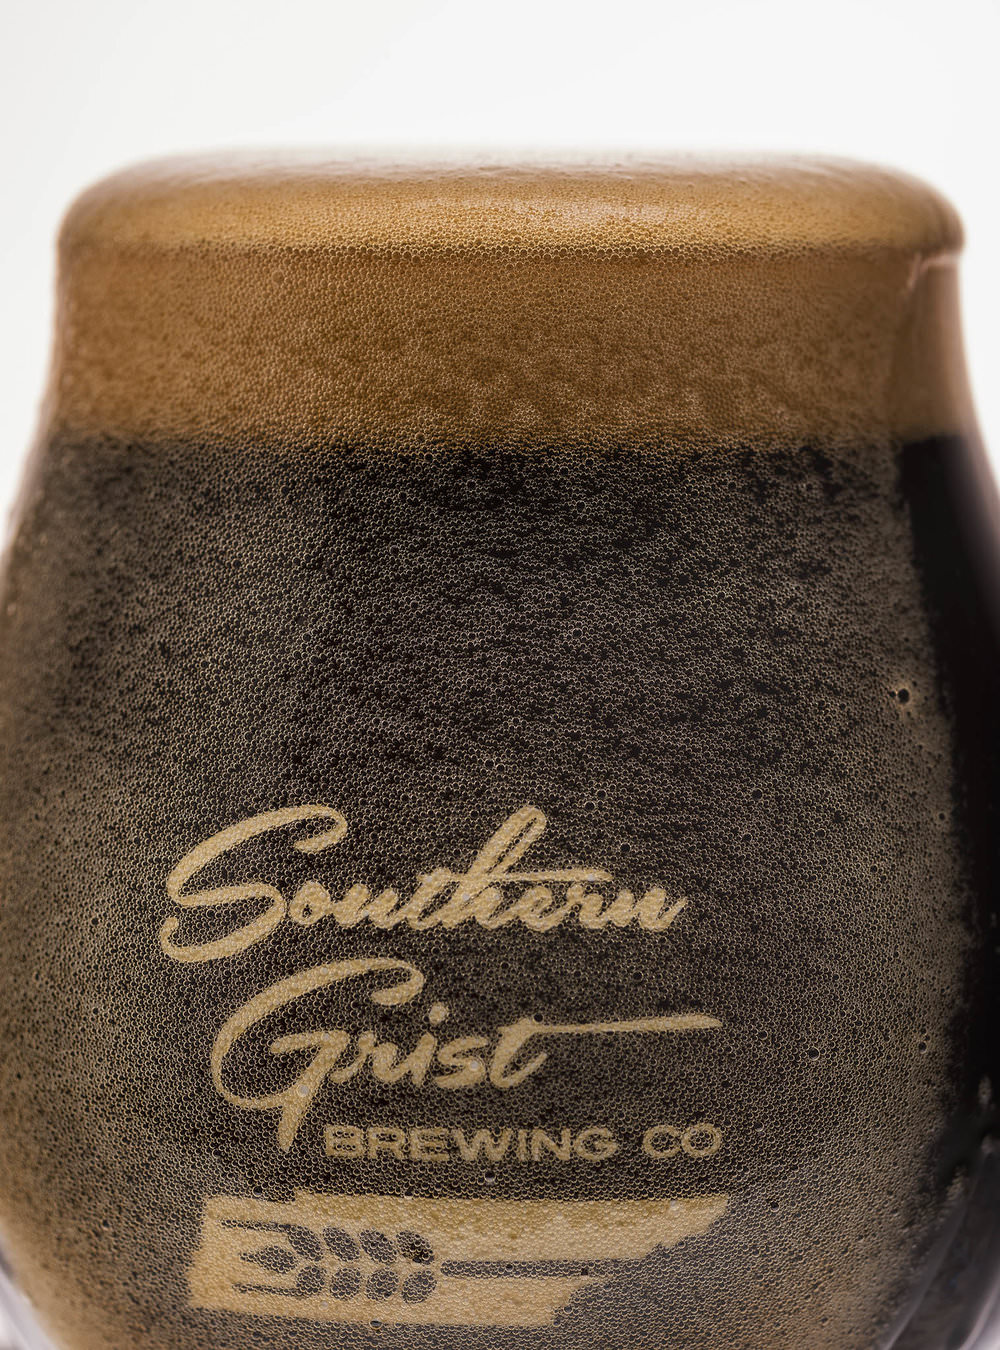 Southern Grist beer with the head overflowing